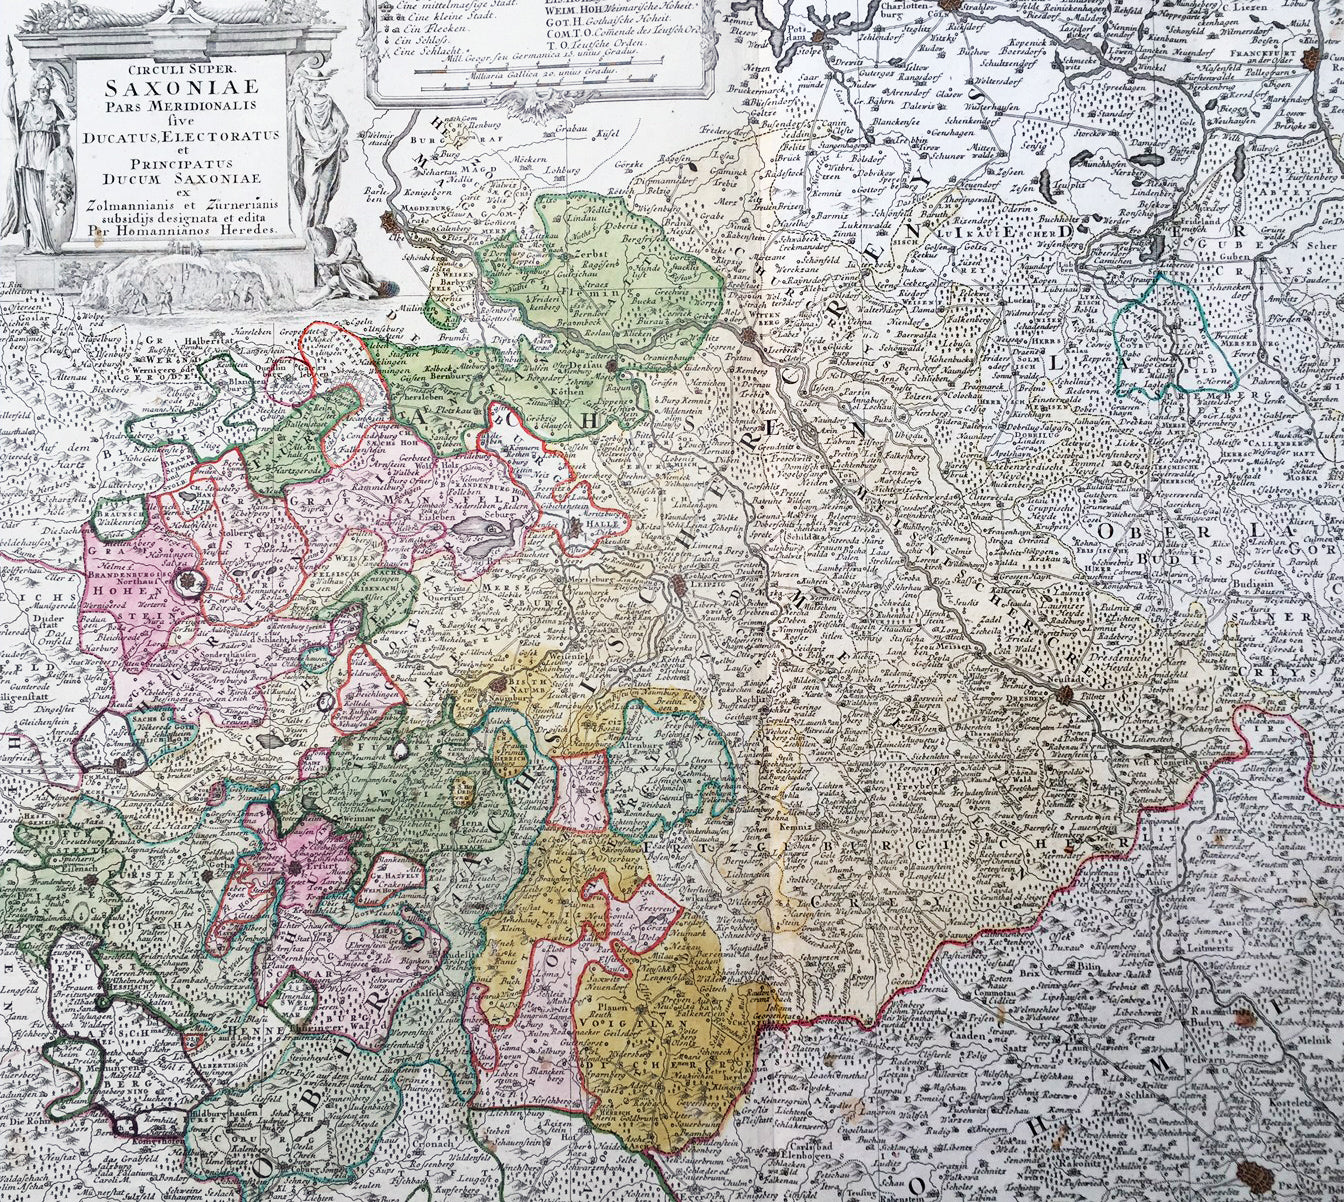 Map Of Old Germany.1735 J B Homann Large Antique Map Of Old Saxony Germany Berlin To